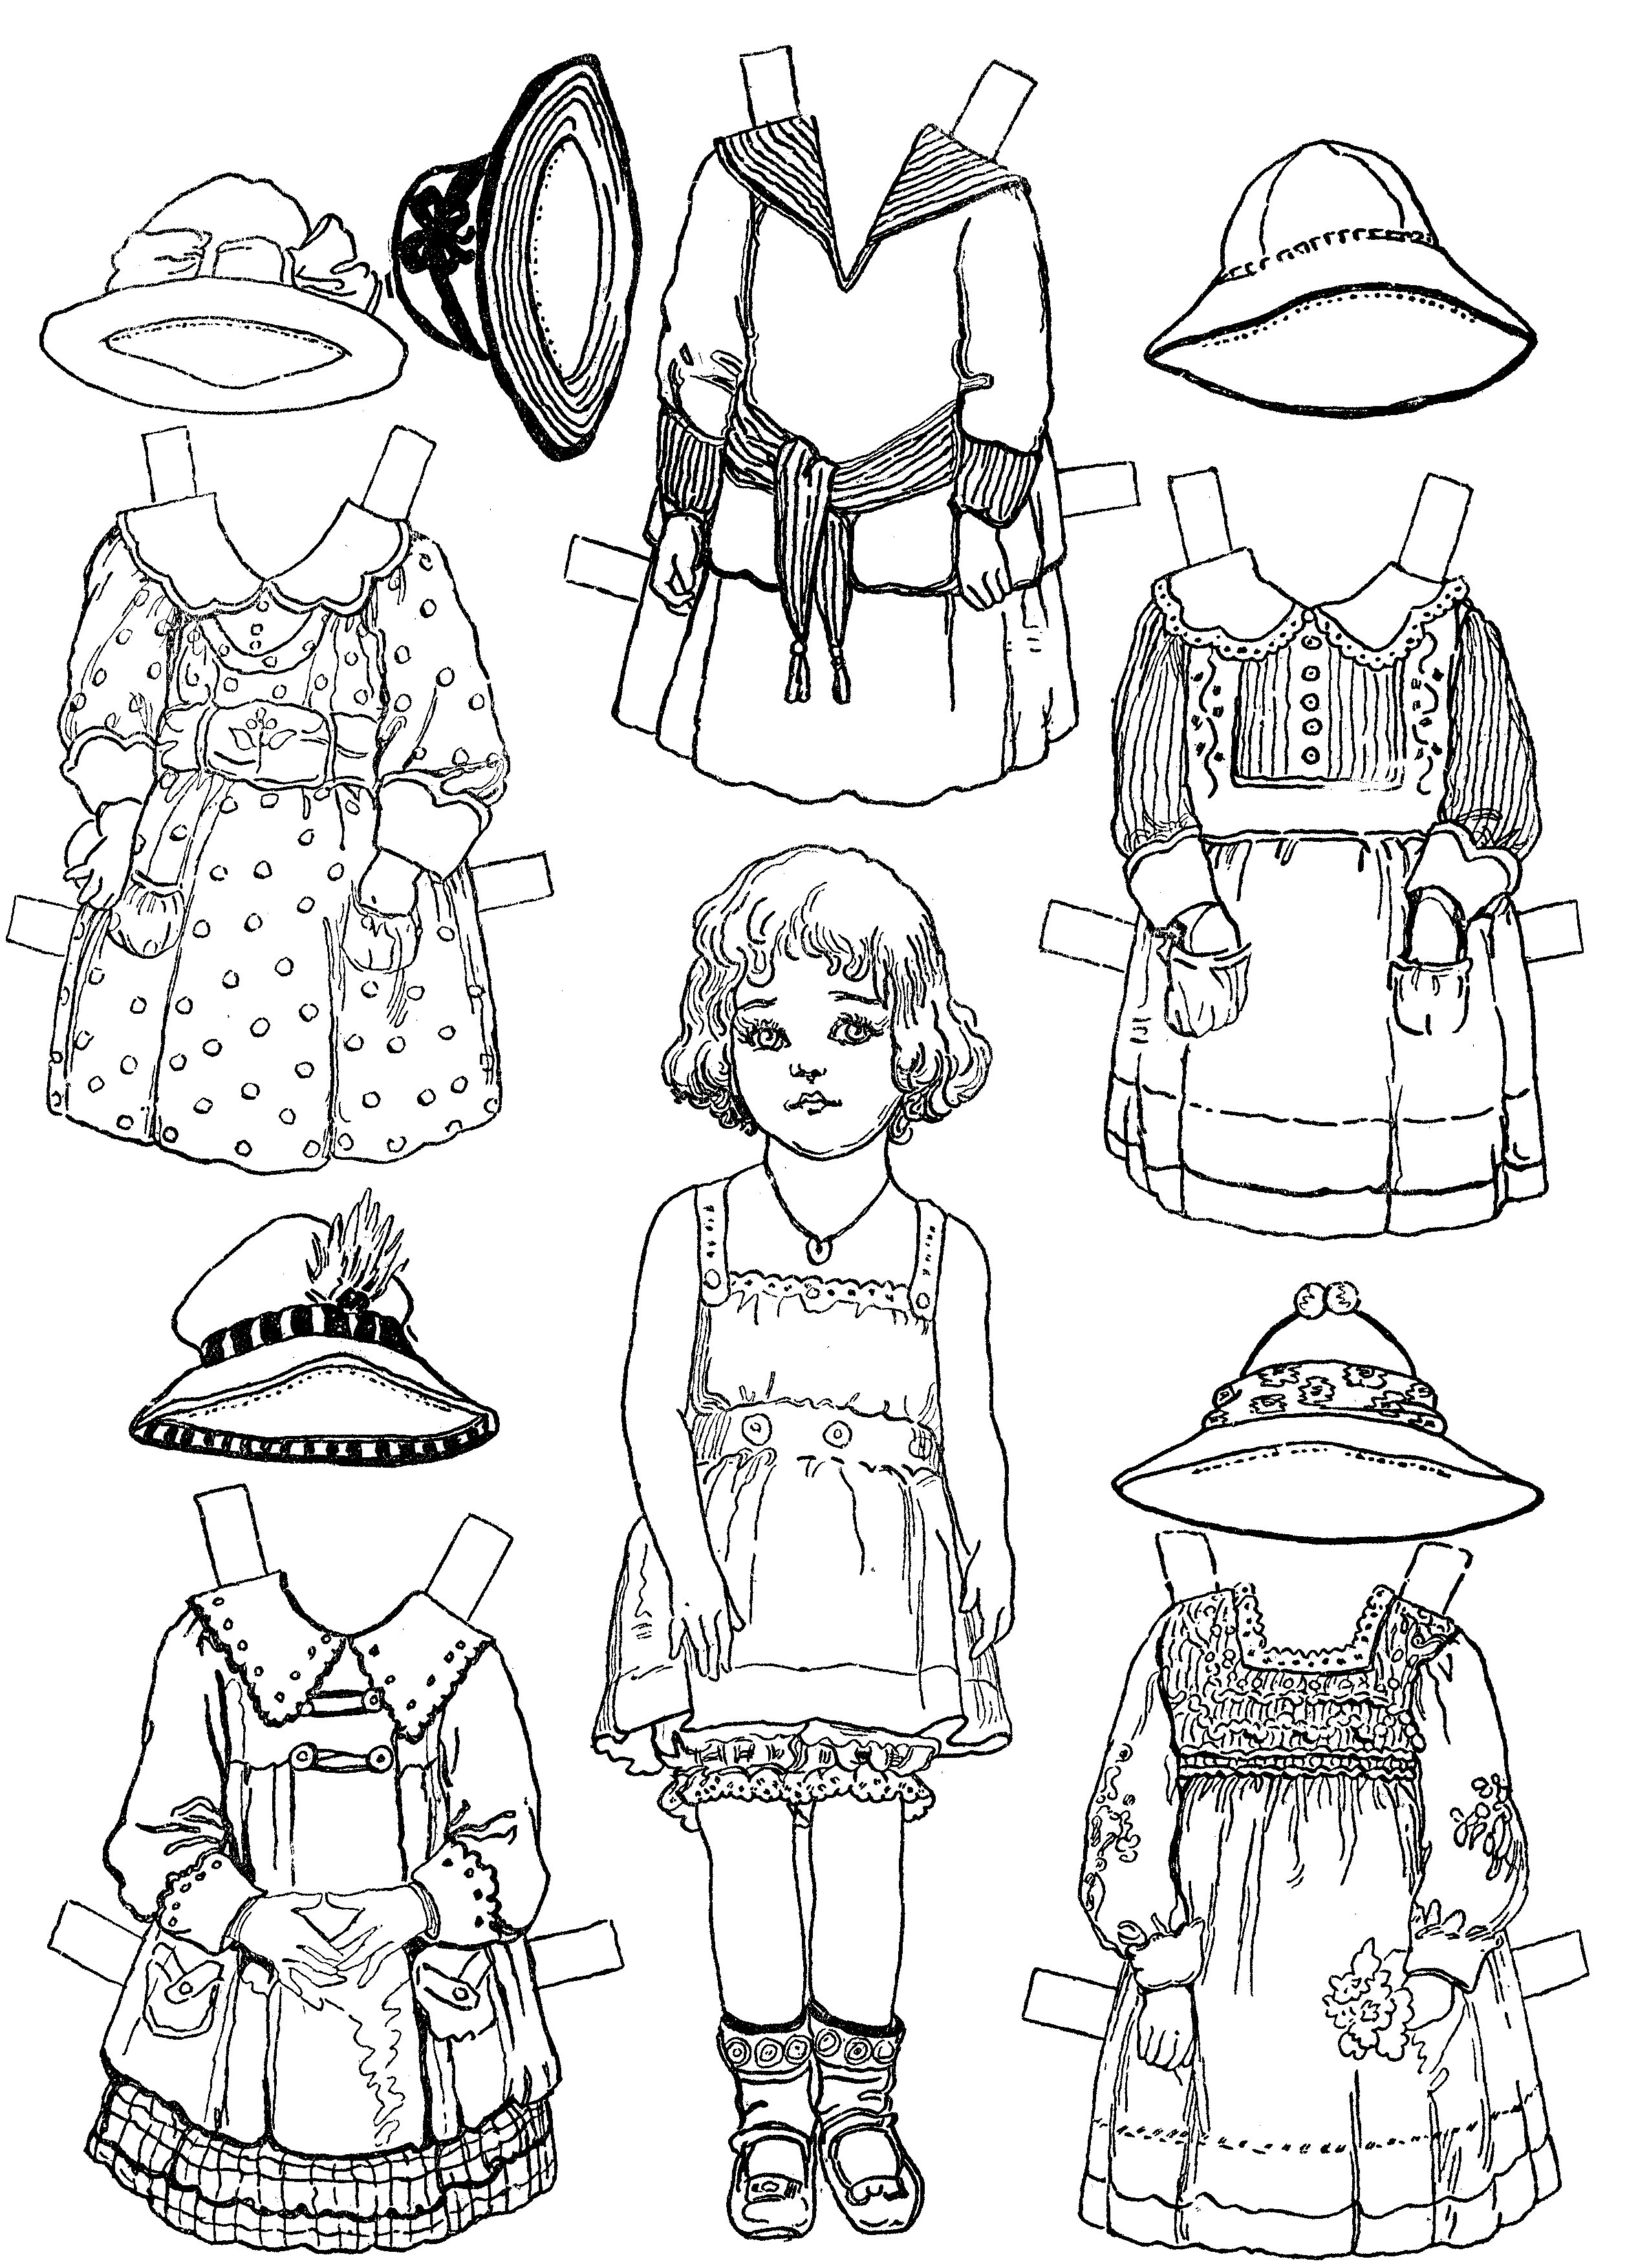 doll coloring pages for free - photo#28